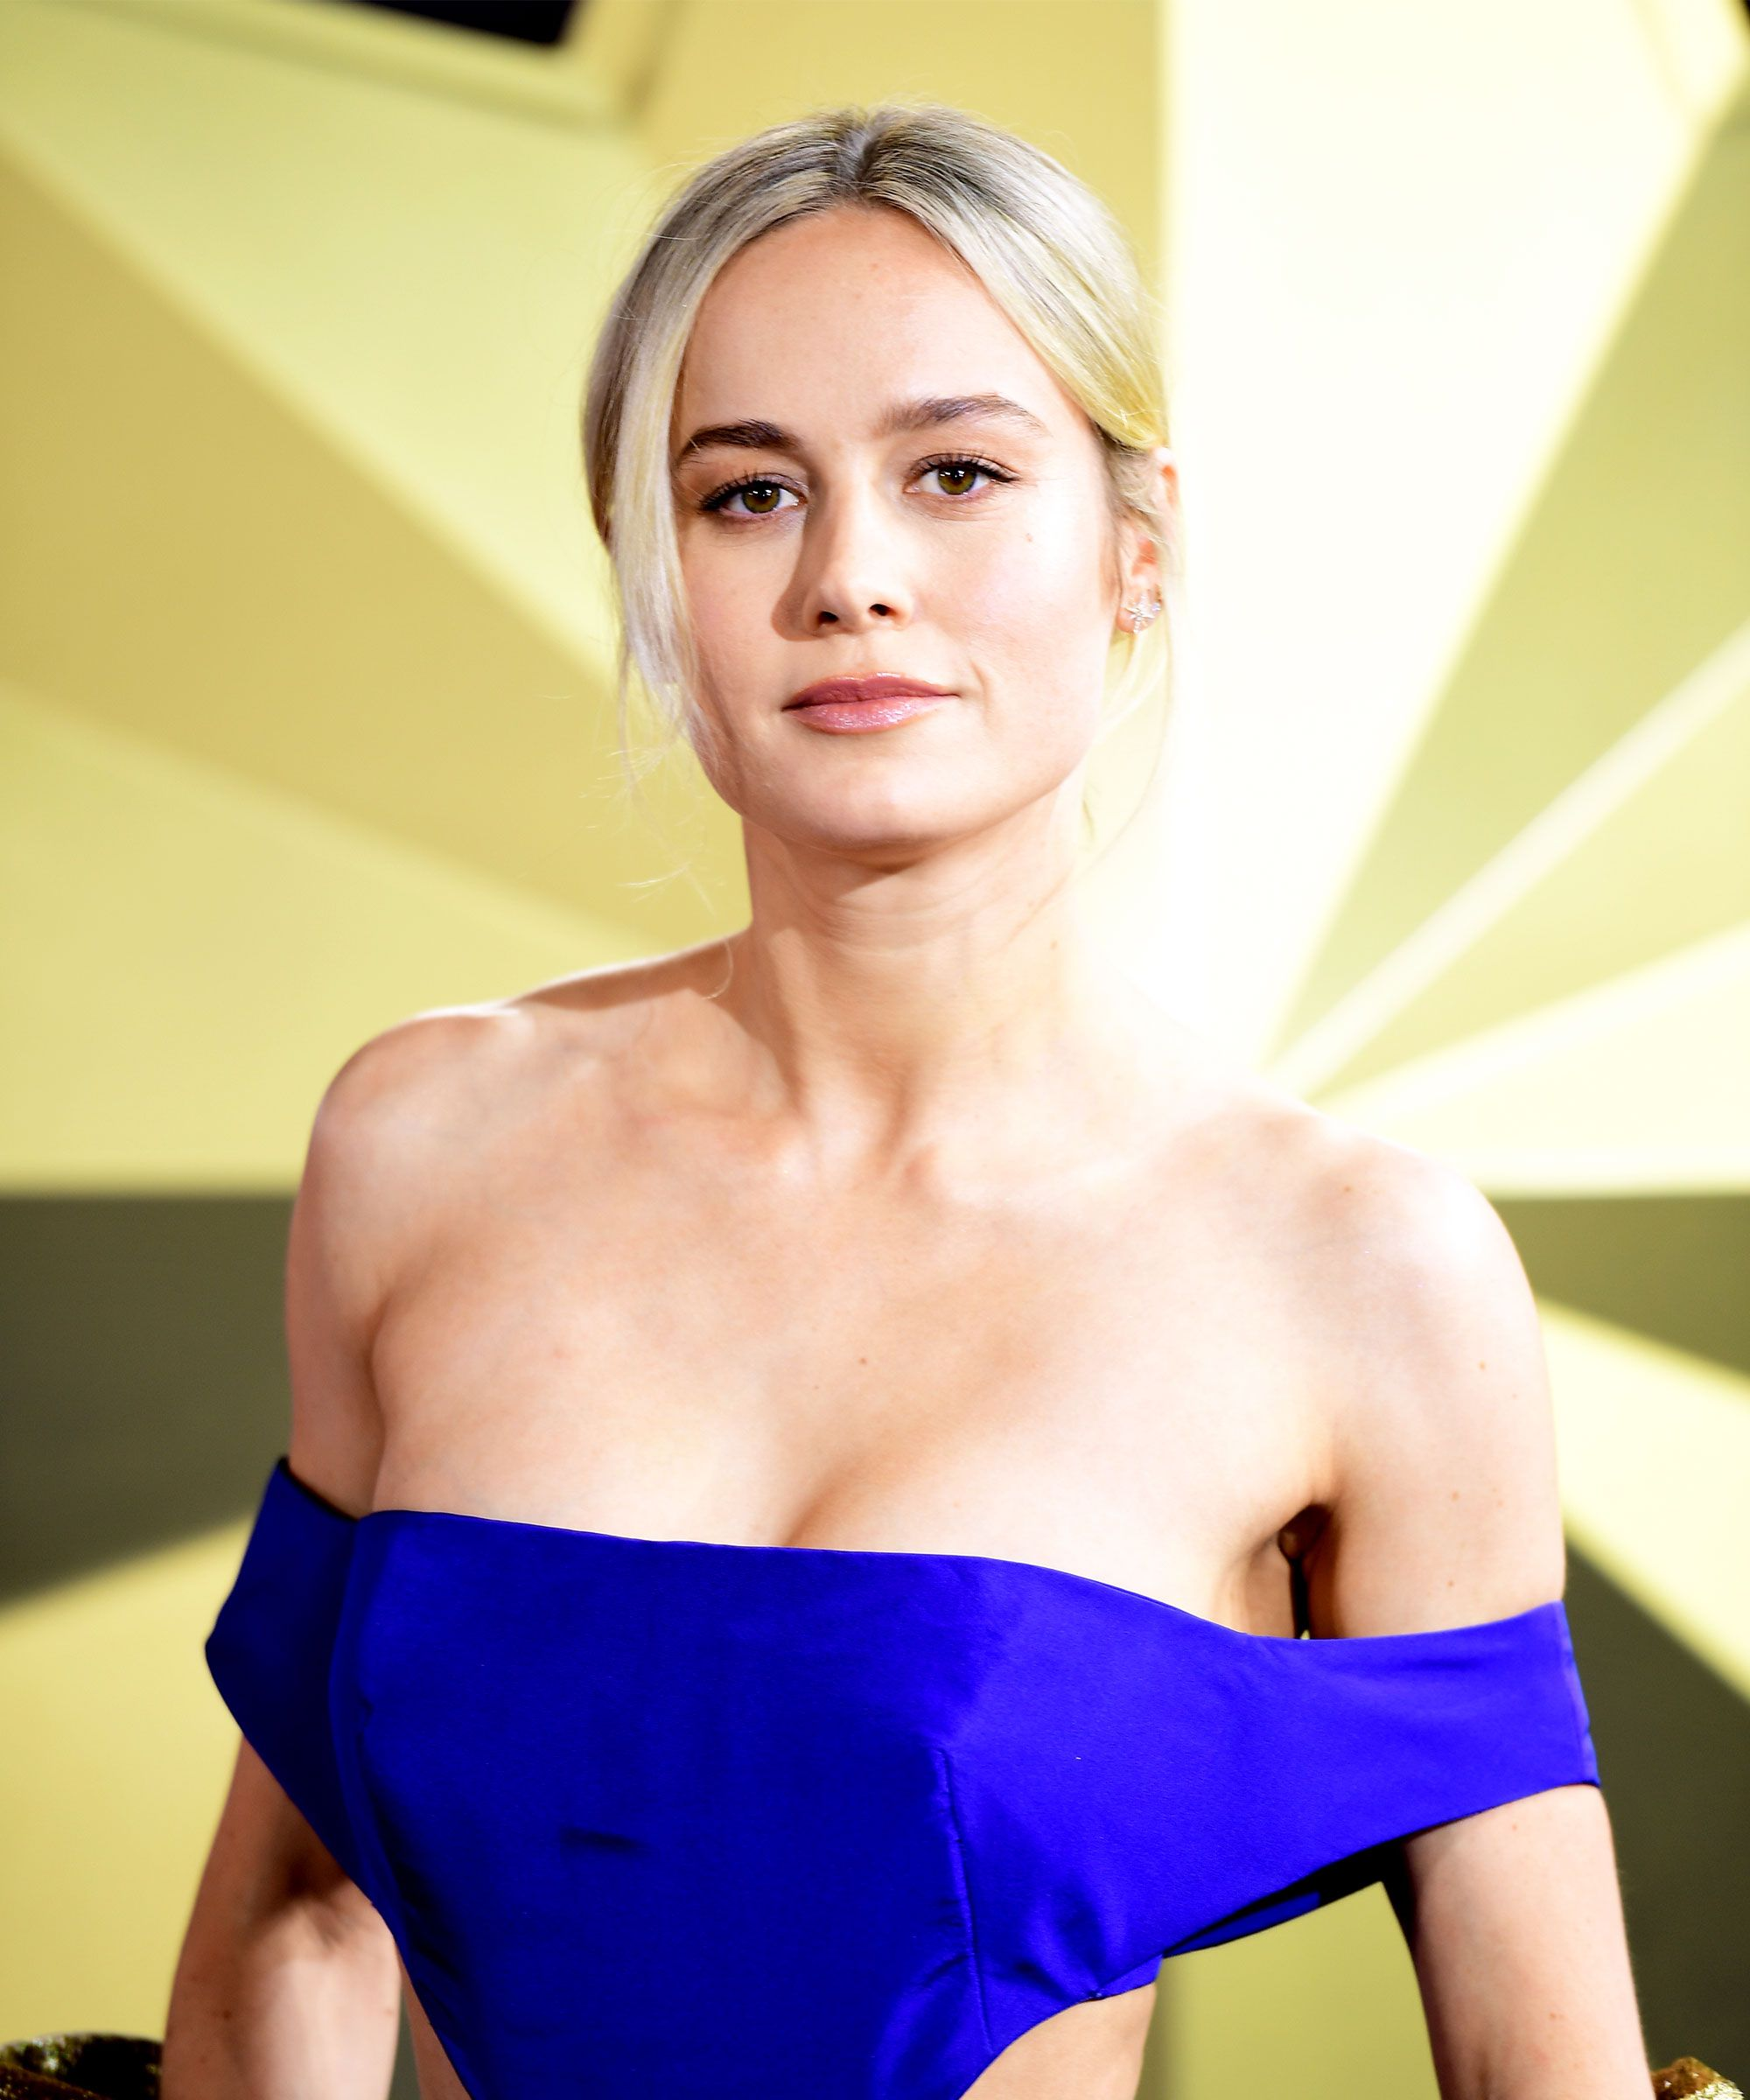 brie-larson boobs